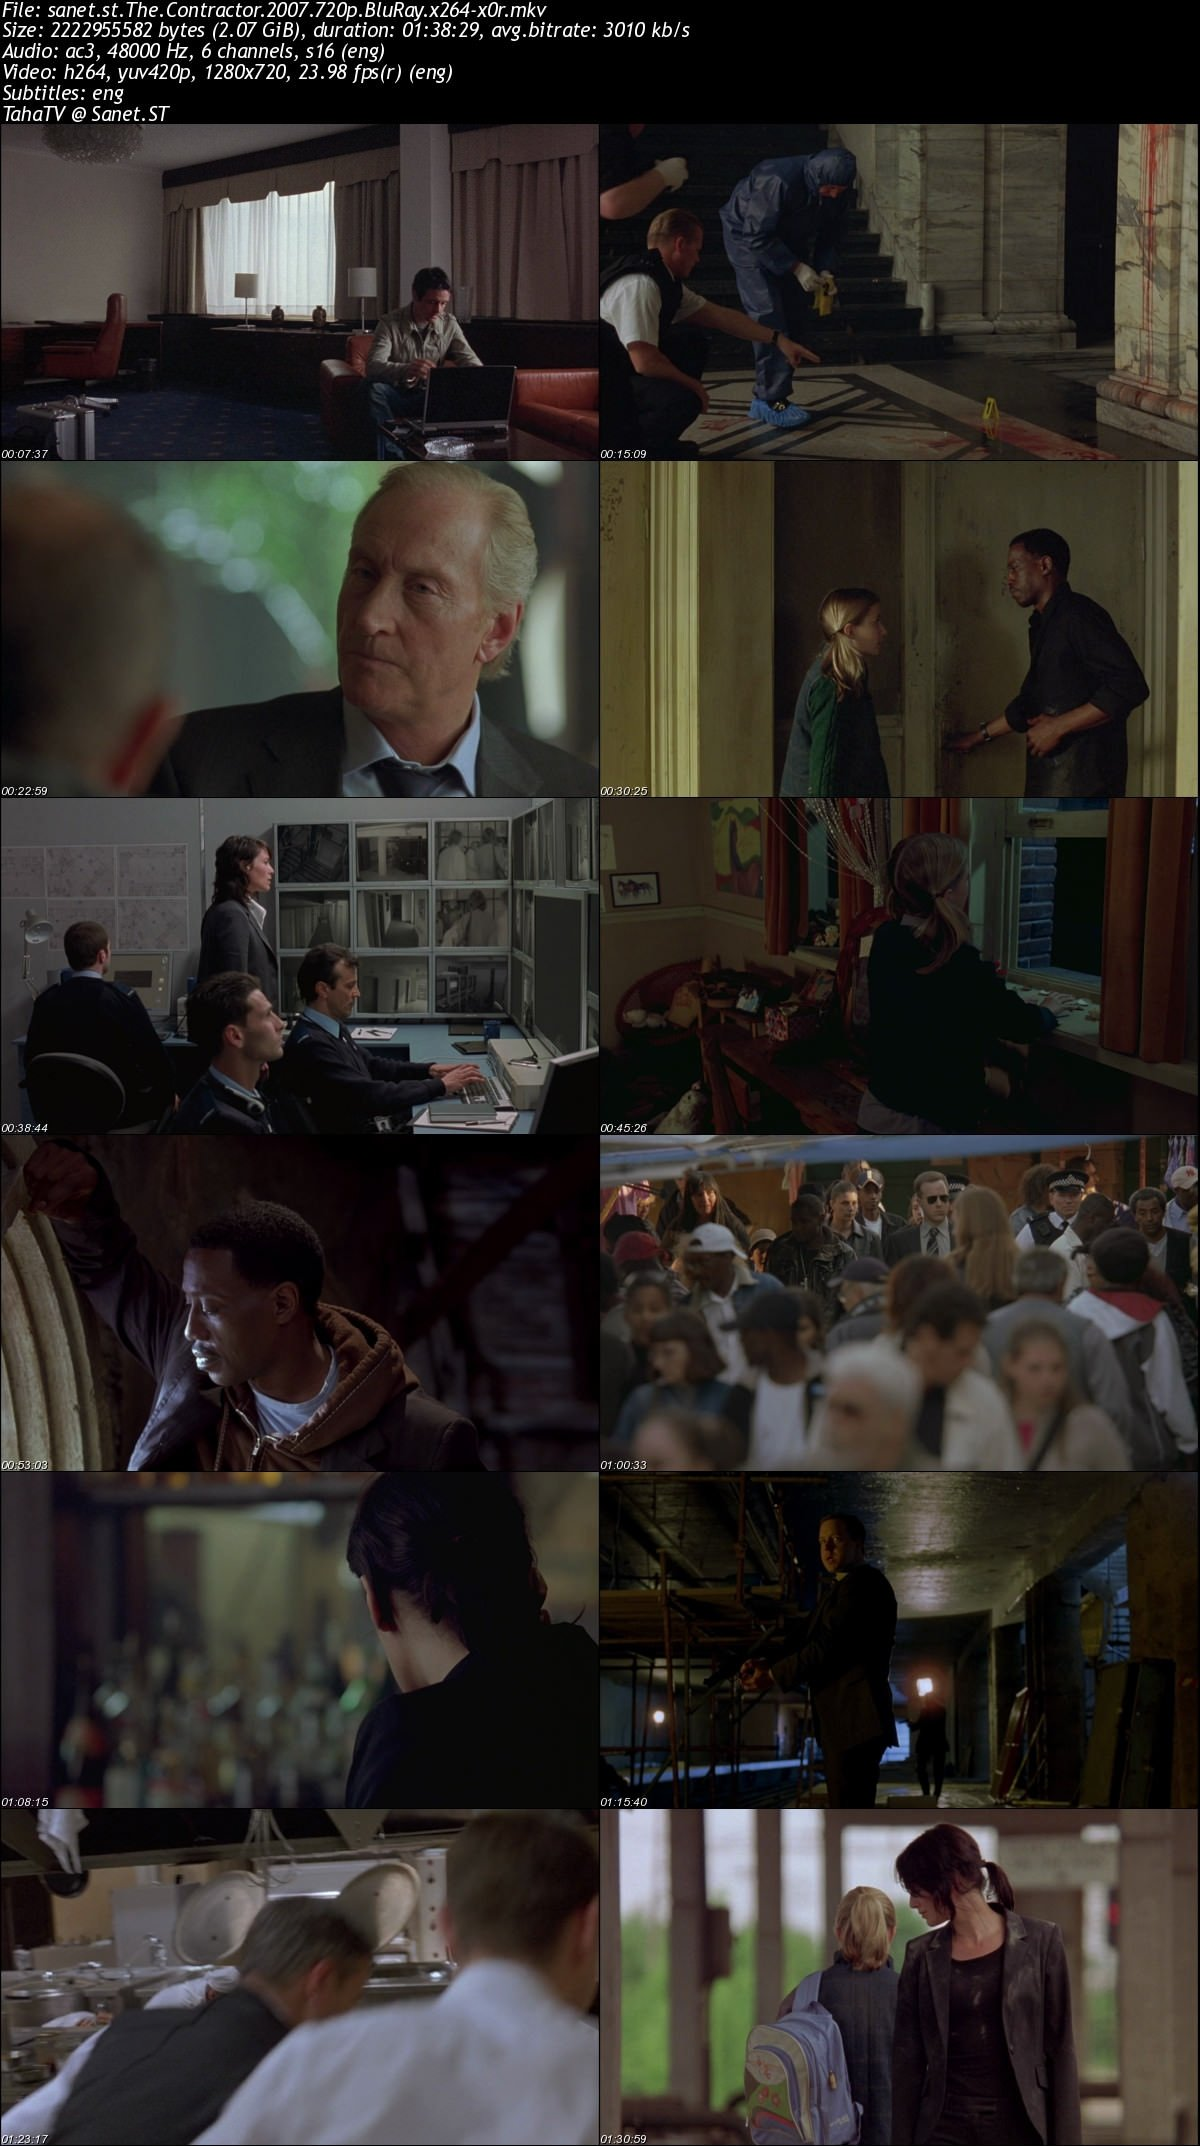 Download The Contractor 2007 720p Bluray X264 X0r Softarchive